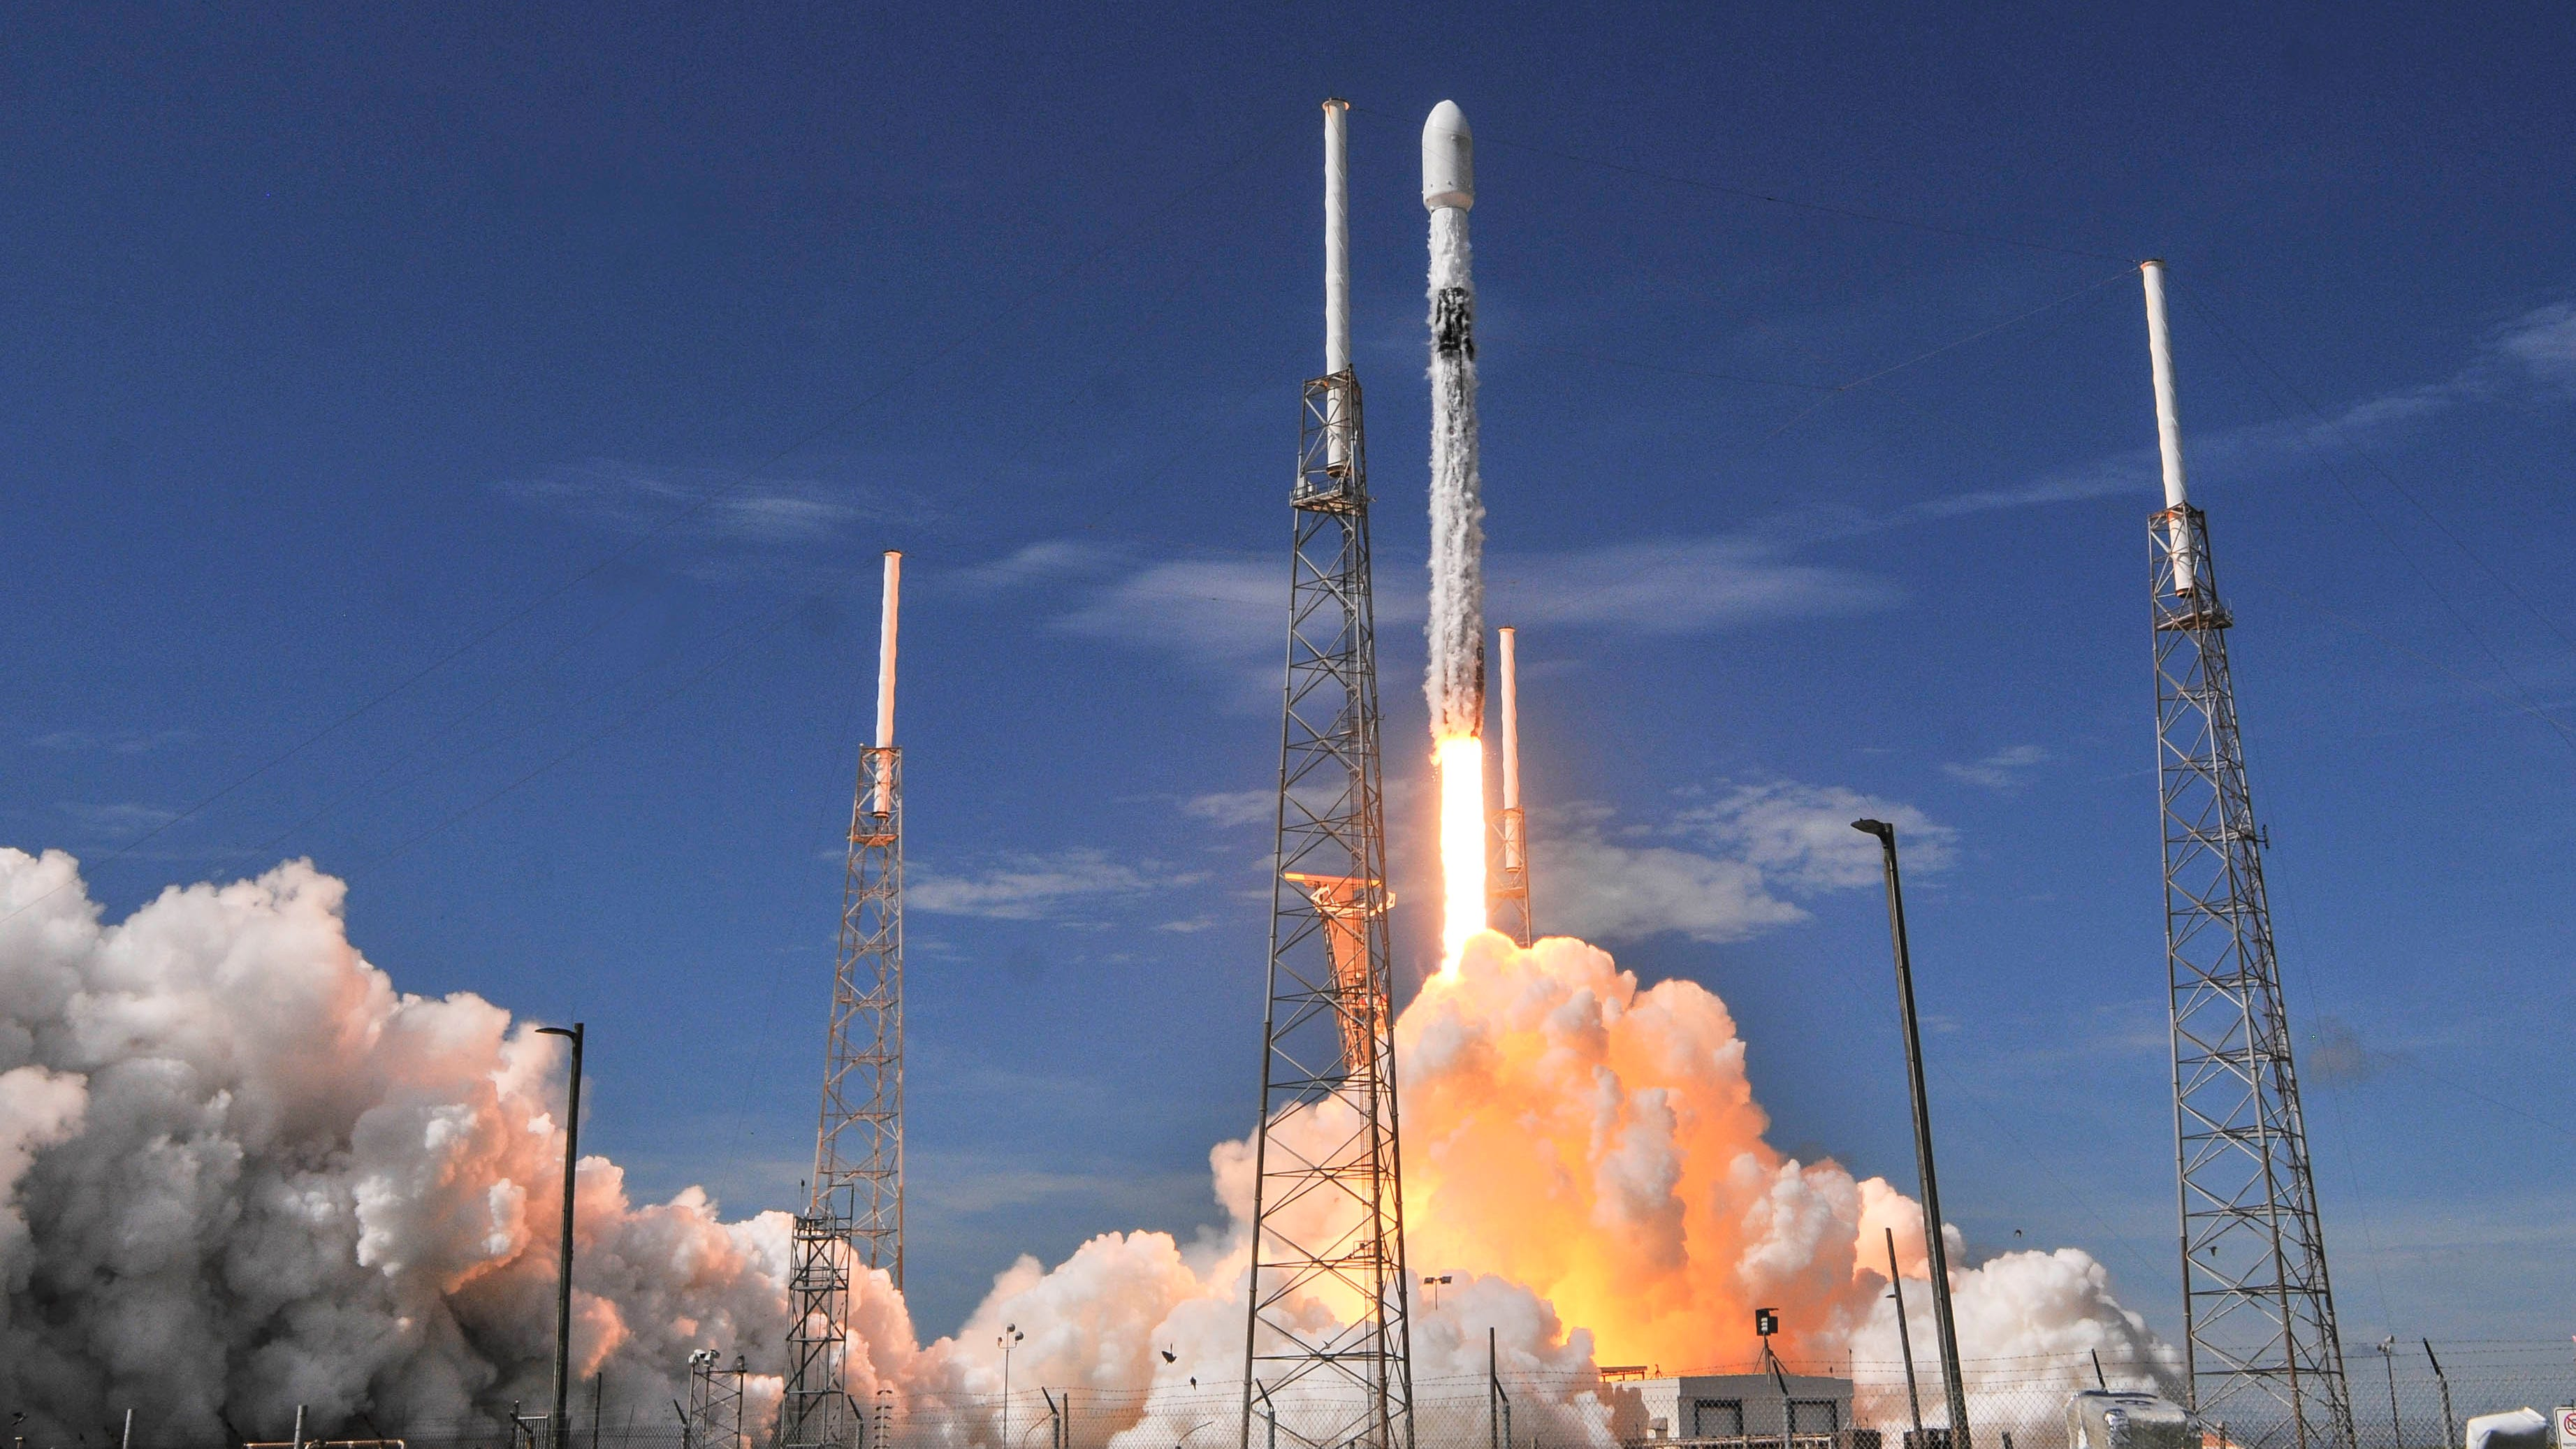 A SpaceX Falcon 9 rocket lifts off from Pad 40 at